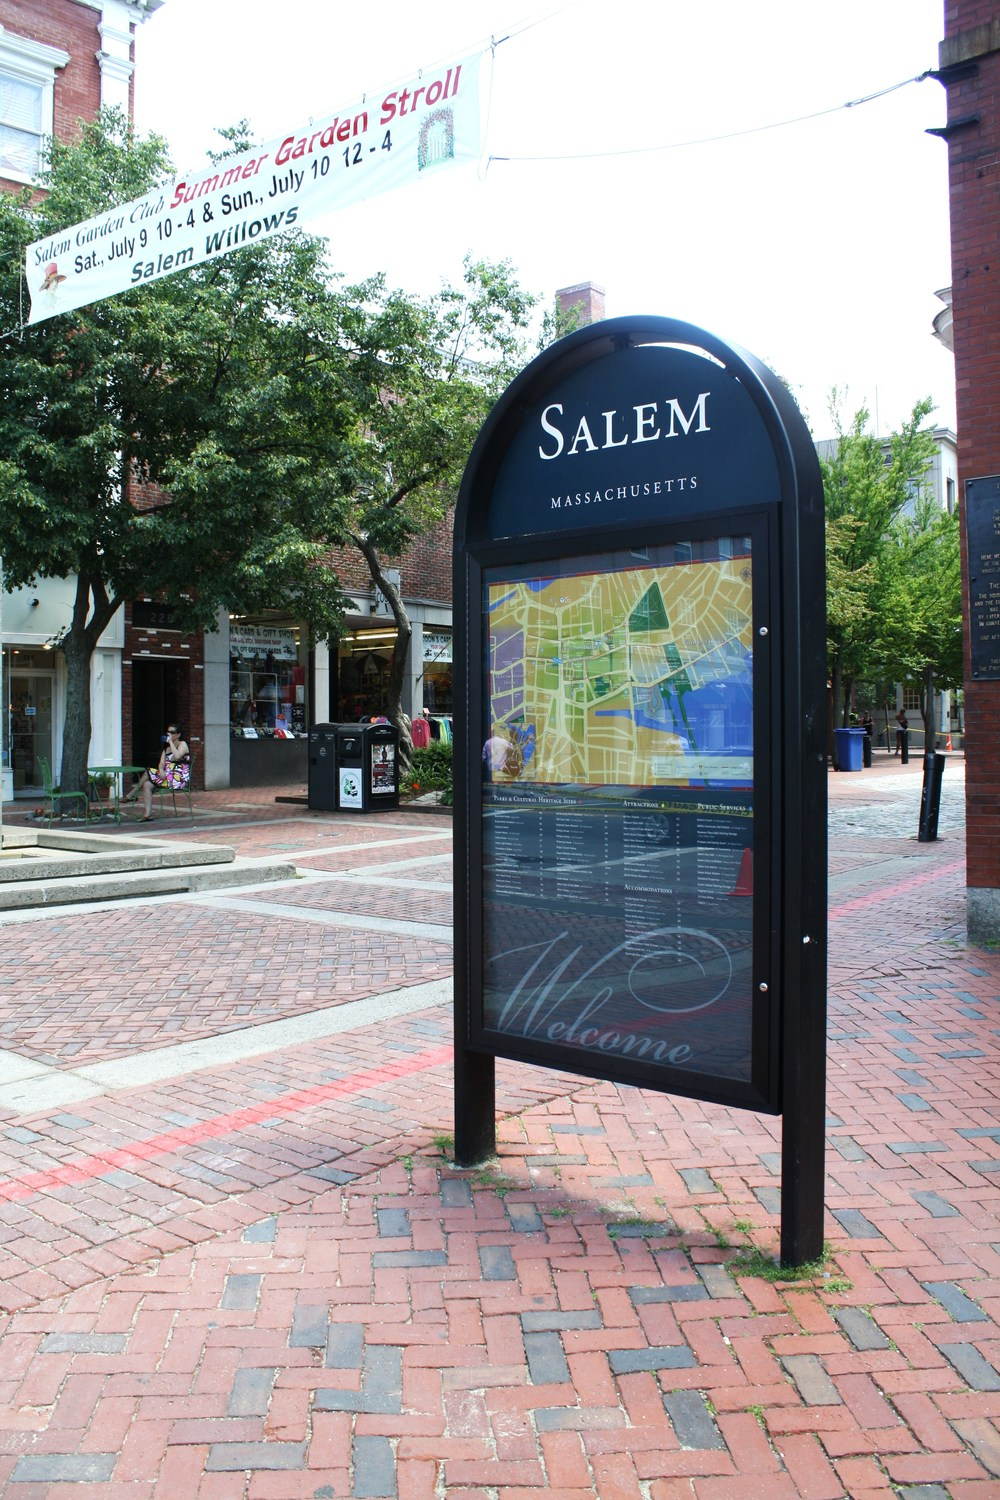 SALEM_6_WEBSITE.JPG